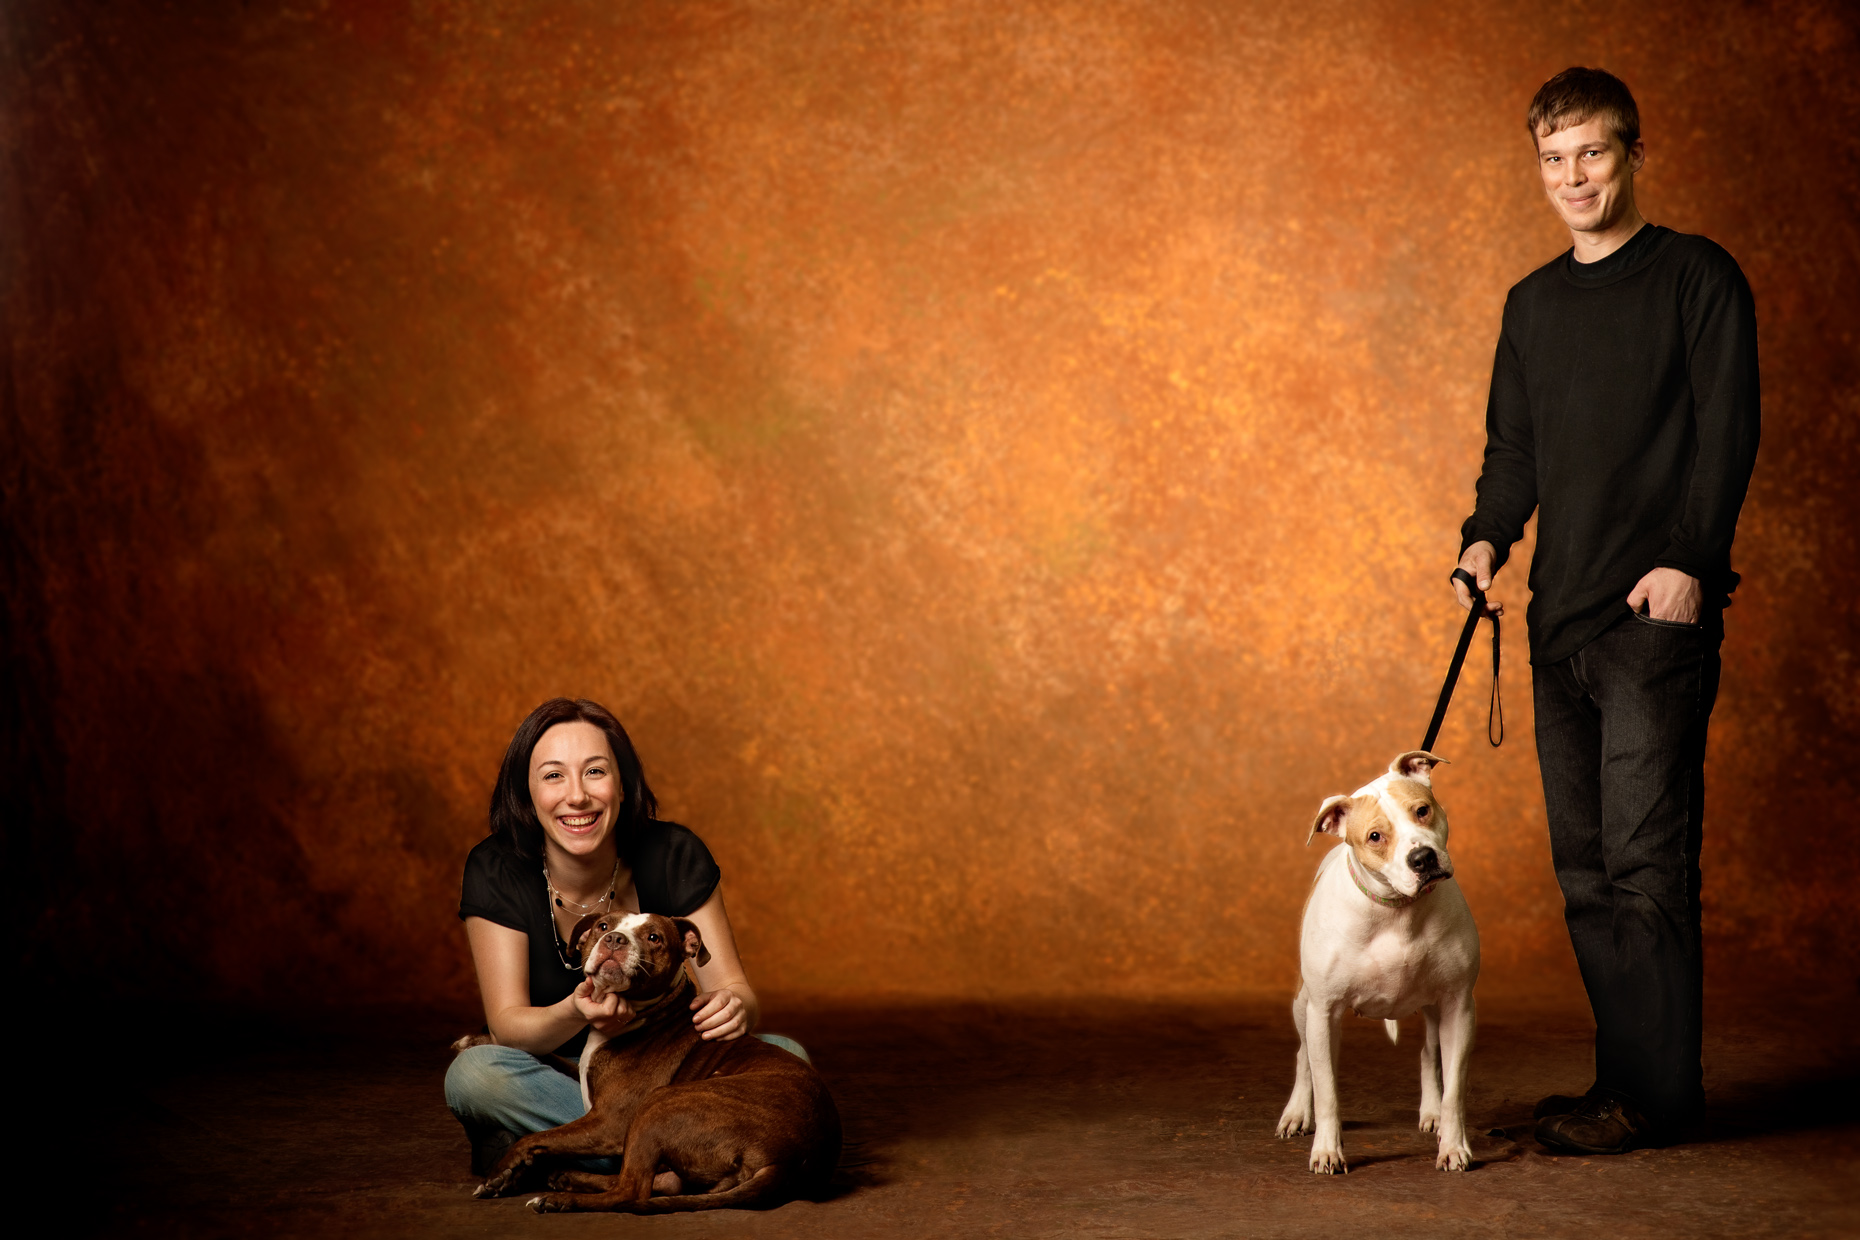 Man and Woman with Dog | Commercial Photographer